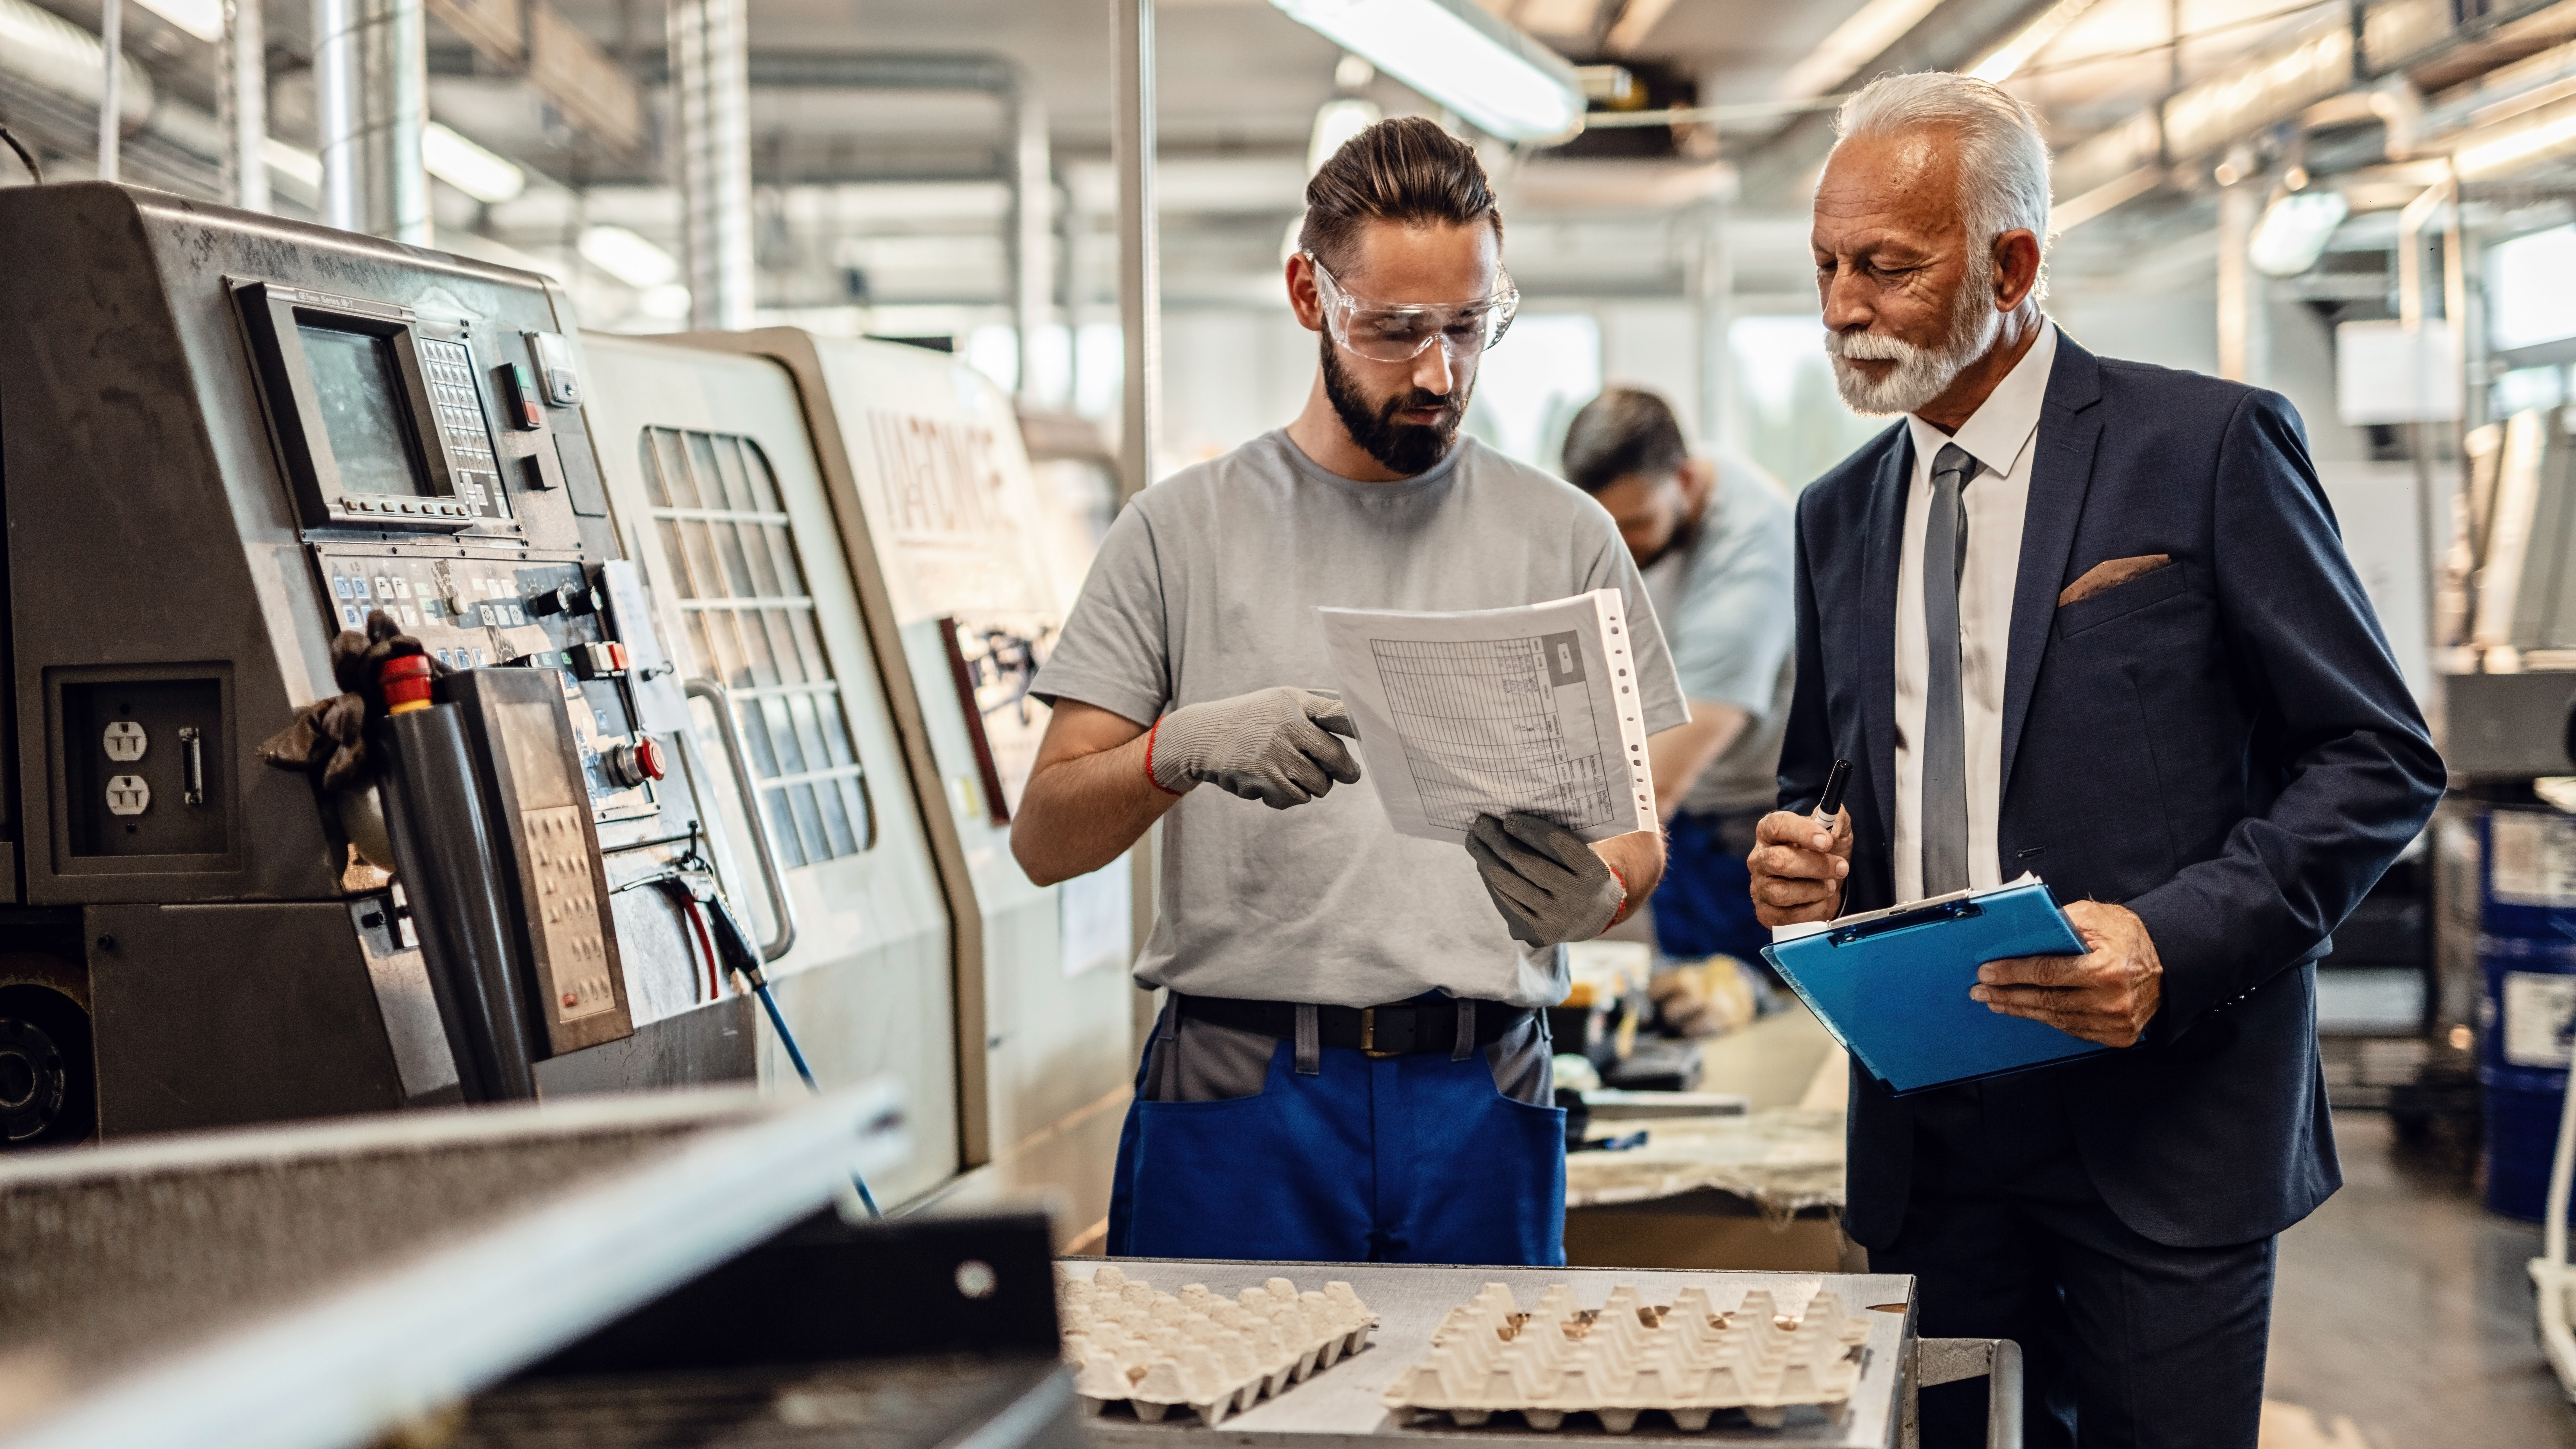 Mature company manager and worker going through reports in industrial facility.